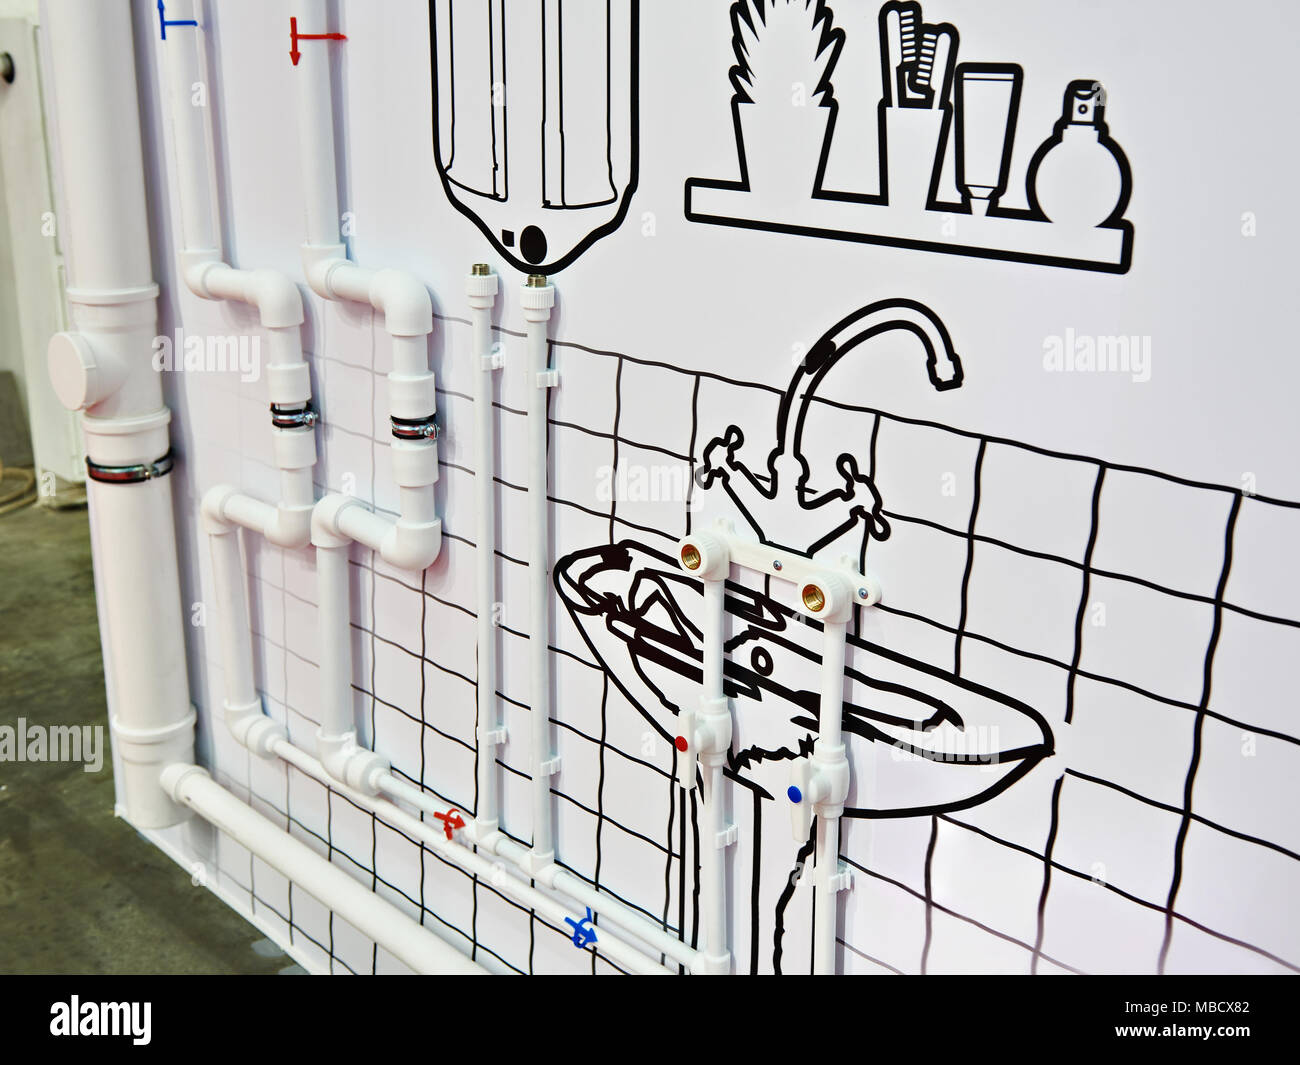 Piping Design Stock Photos Images Alamy Layout Of Water Plastic Home Plumbing Image